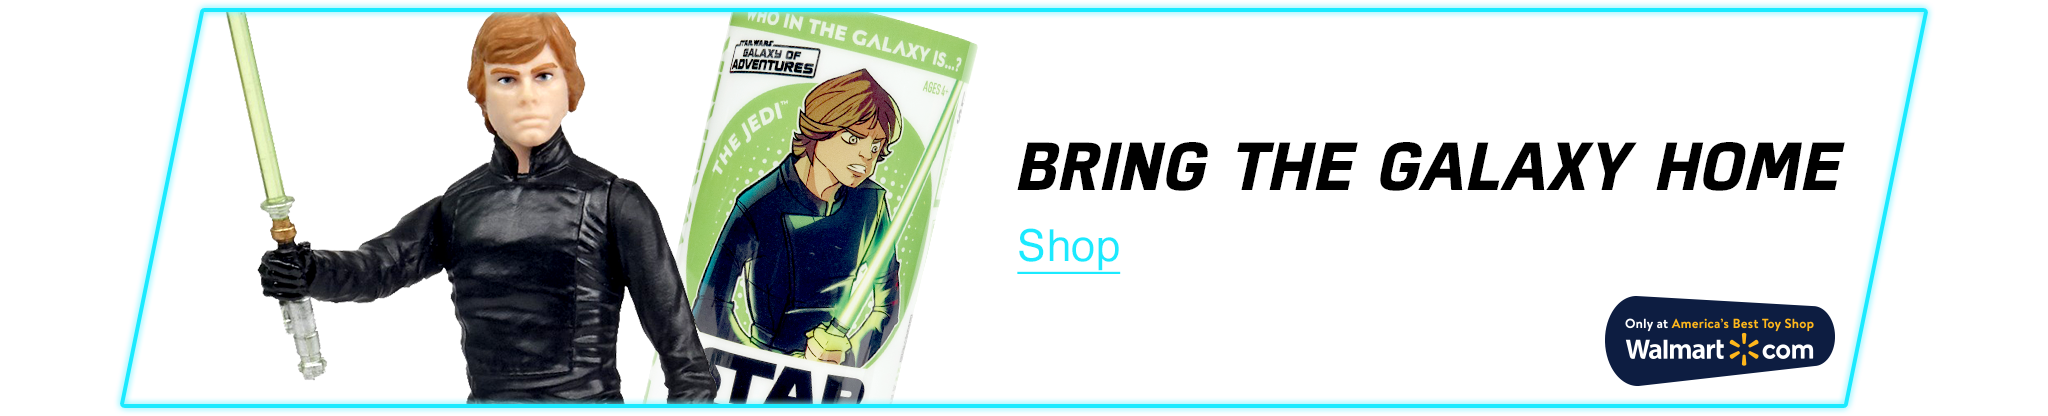 Bring The Galaxy Home - Shop at Walmart.com